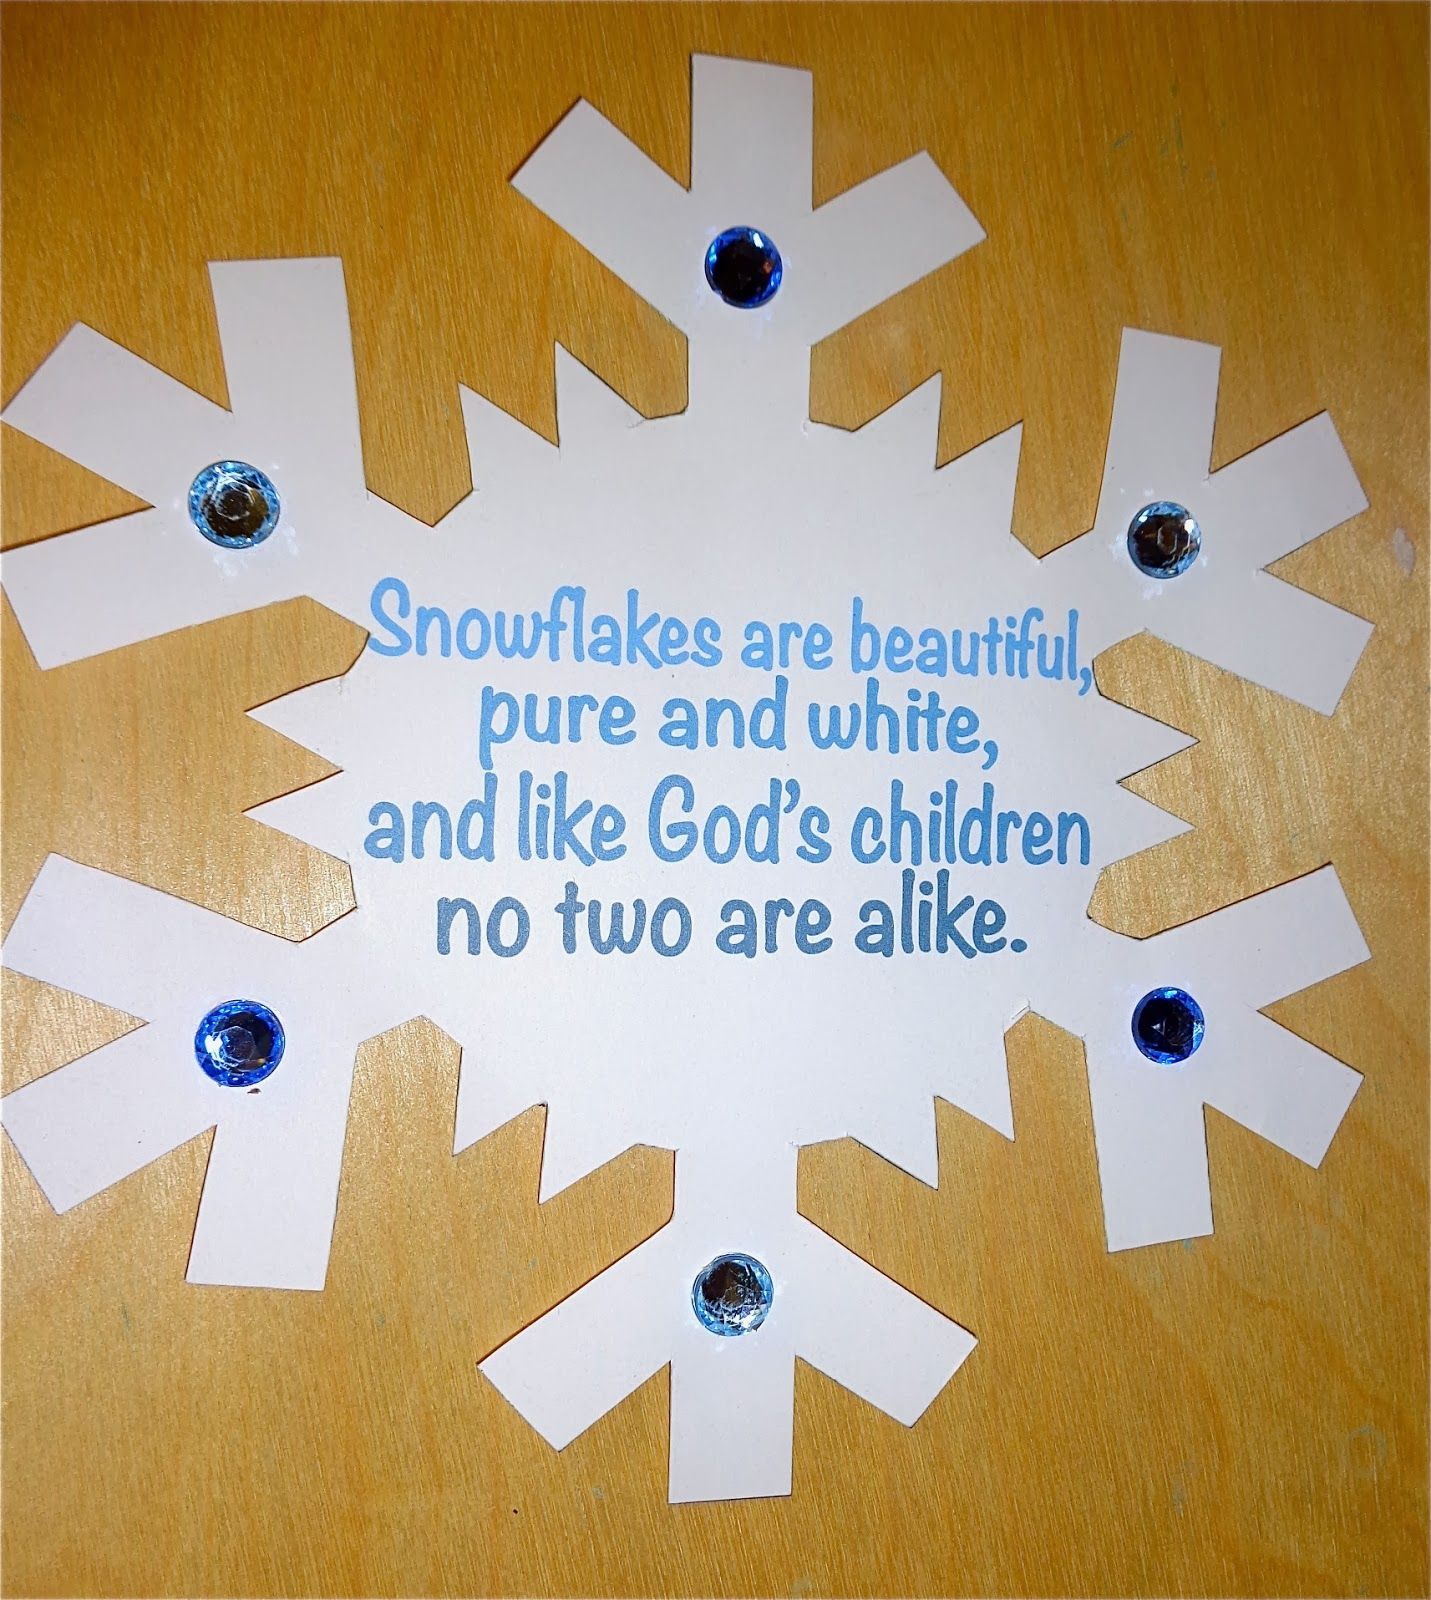 Bulletin Board Ideas 2 Year Olds: I Love Everything About January! The Beautiful White Snow